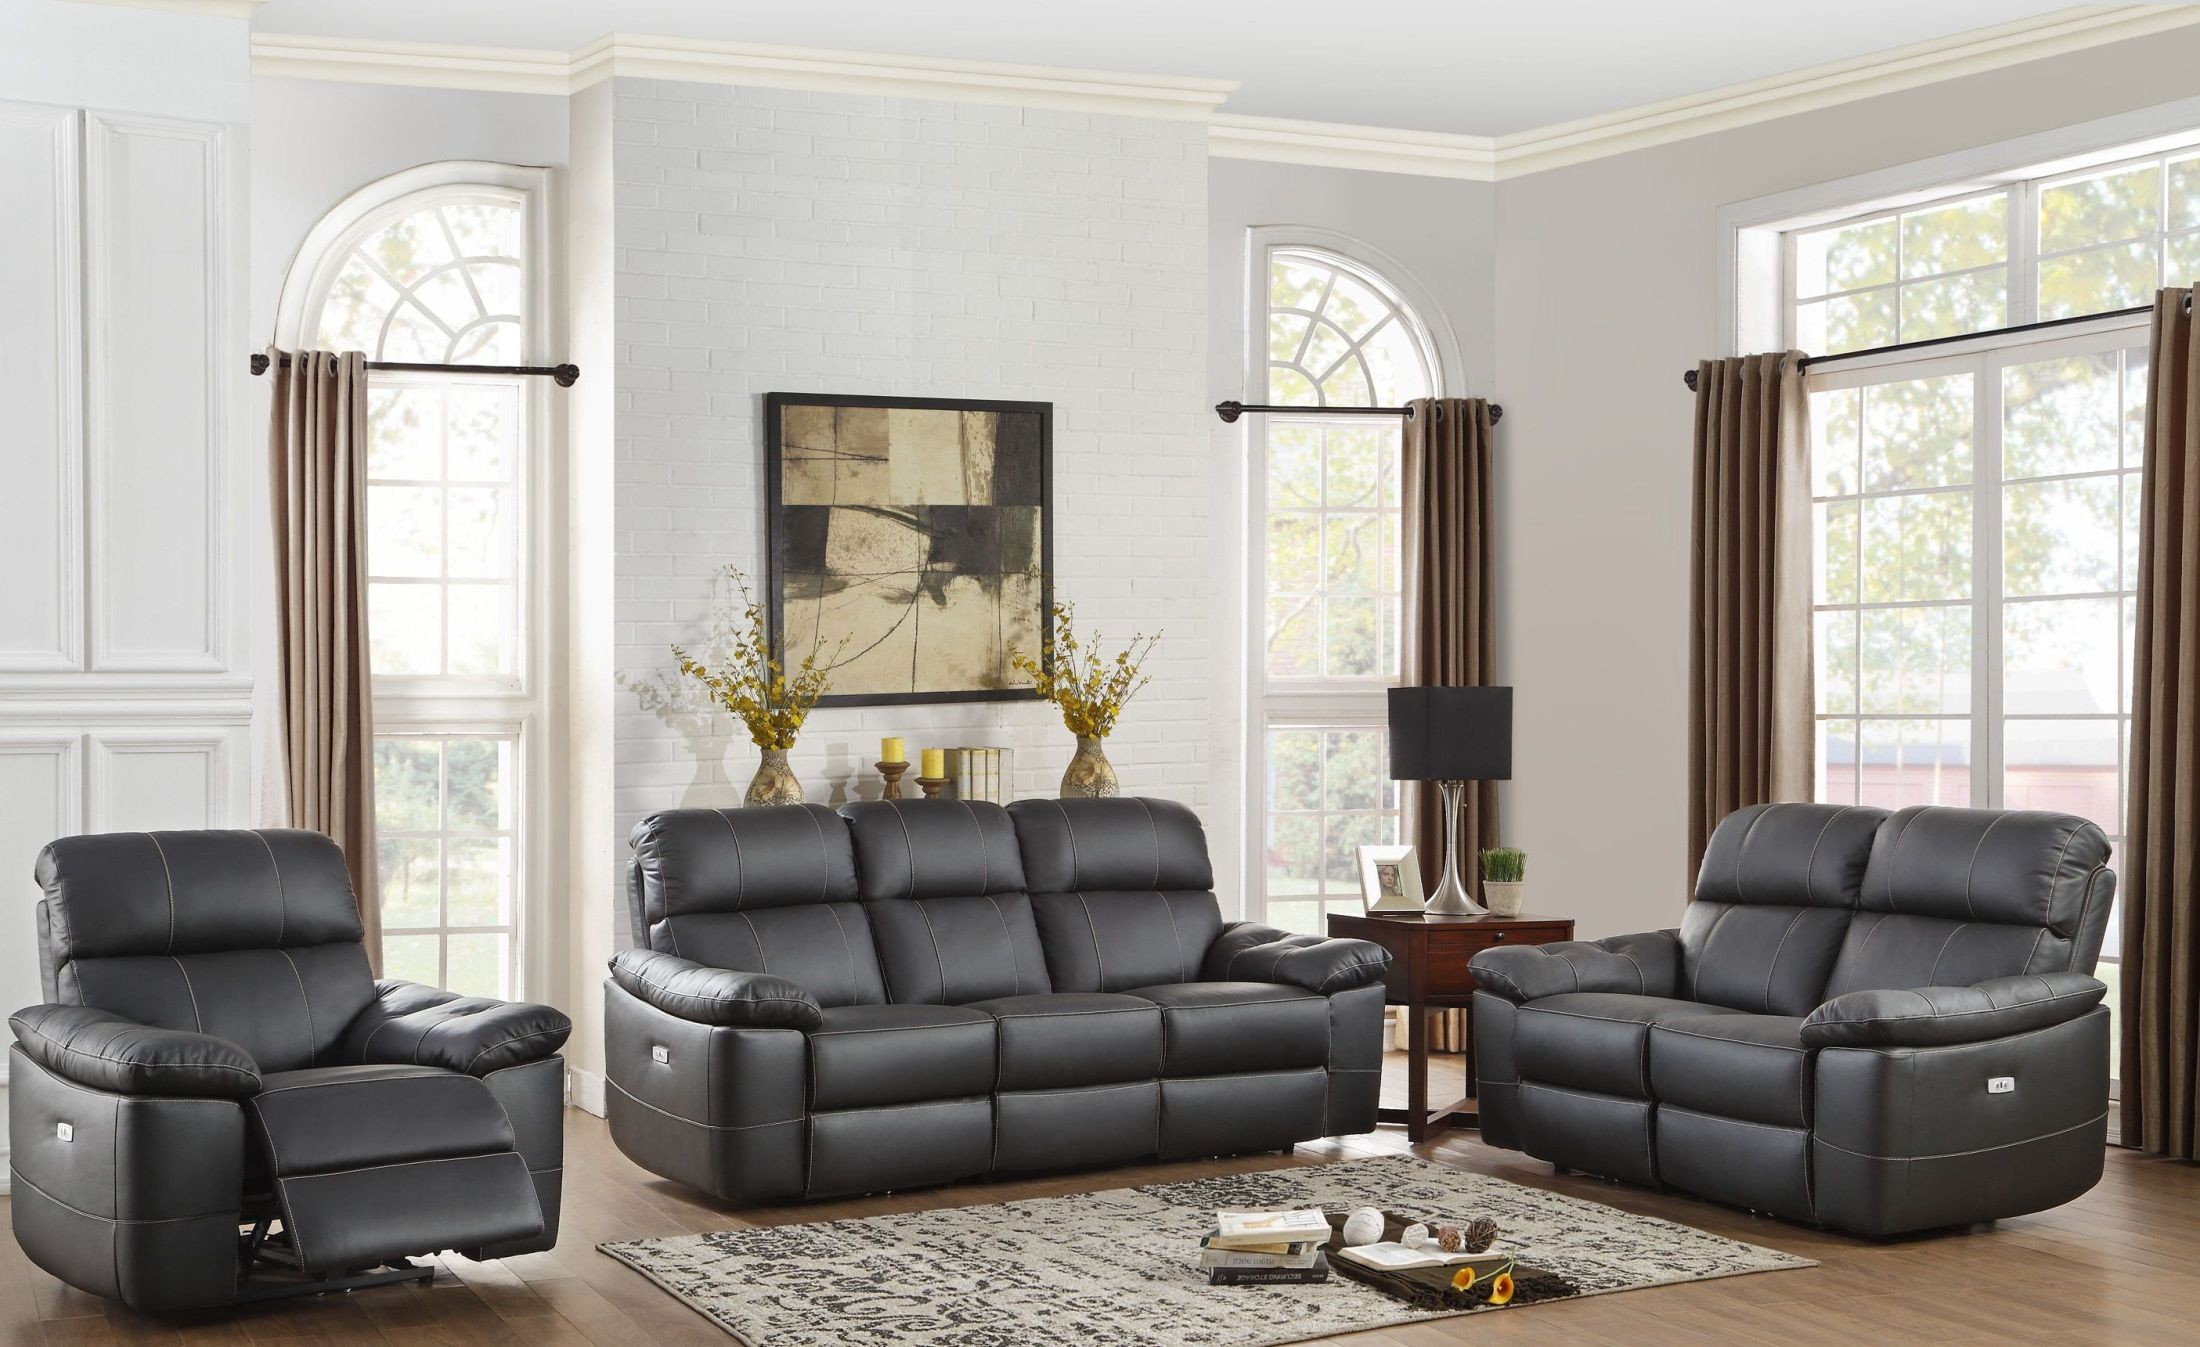 Nicasio Black Power Double Reclining Sofa From Homelegance Coleman Furniture